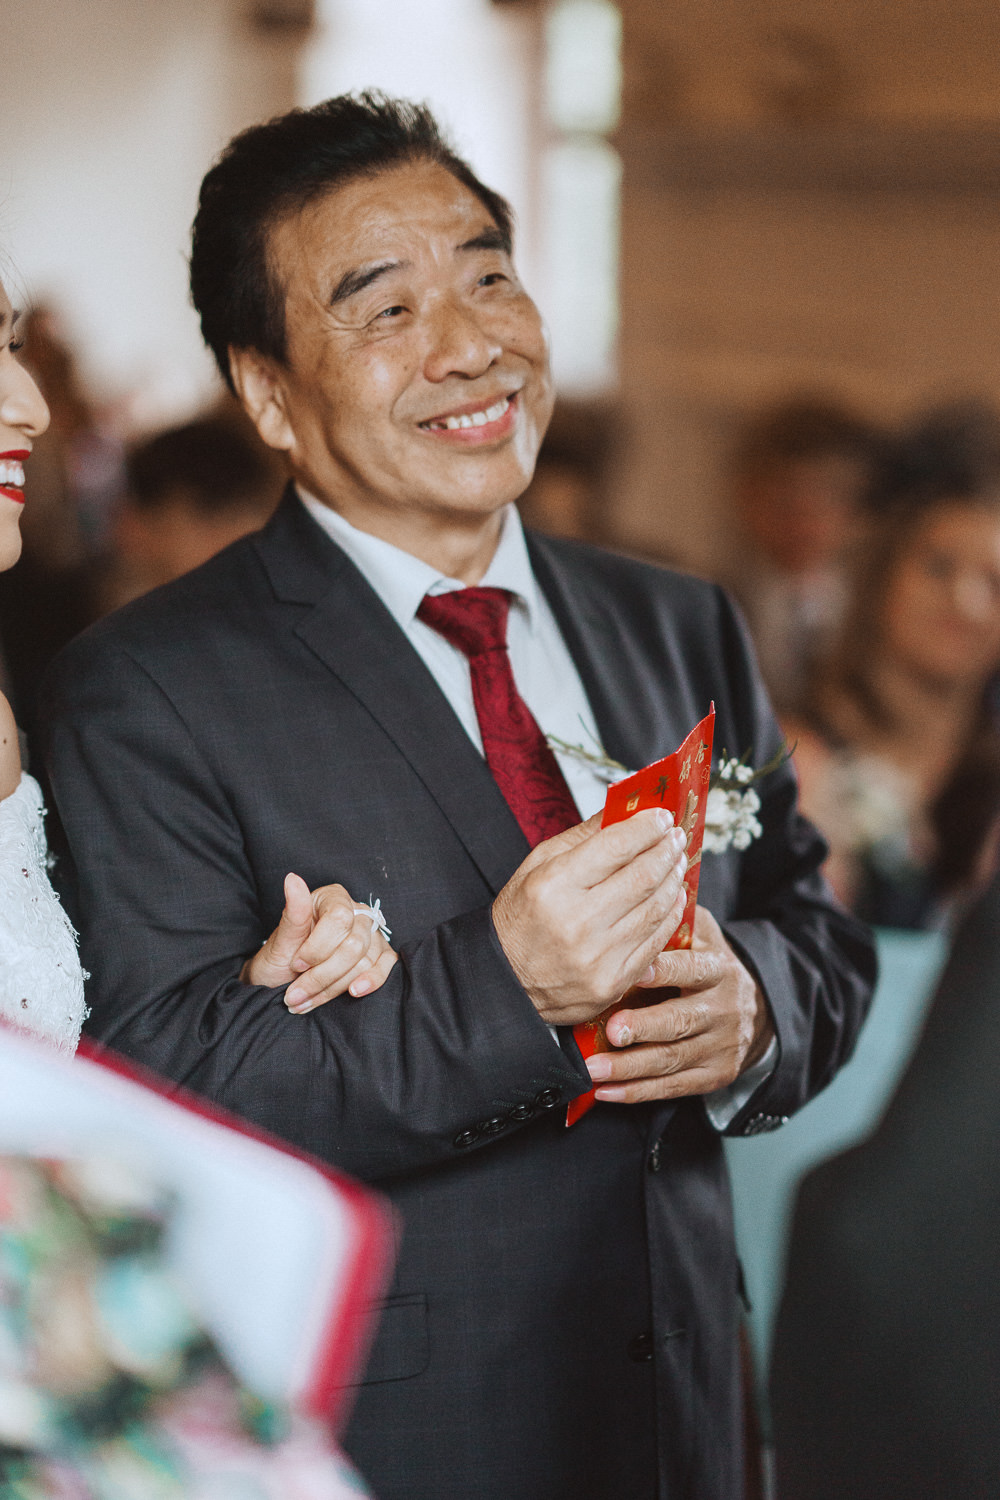 Chinese father in law handing a red envelope at a wedding in Inglewood Manor, Cheshire